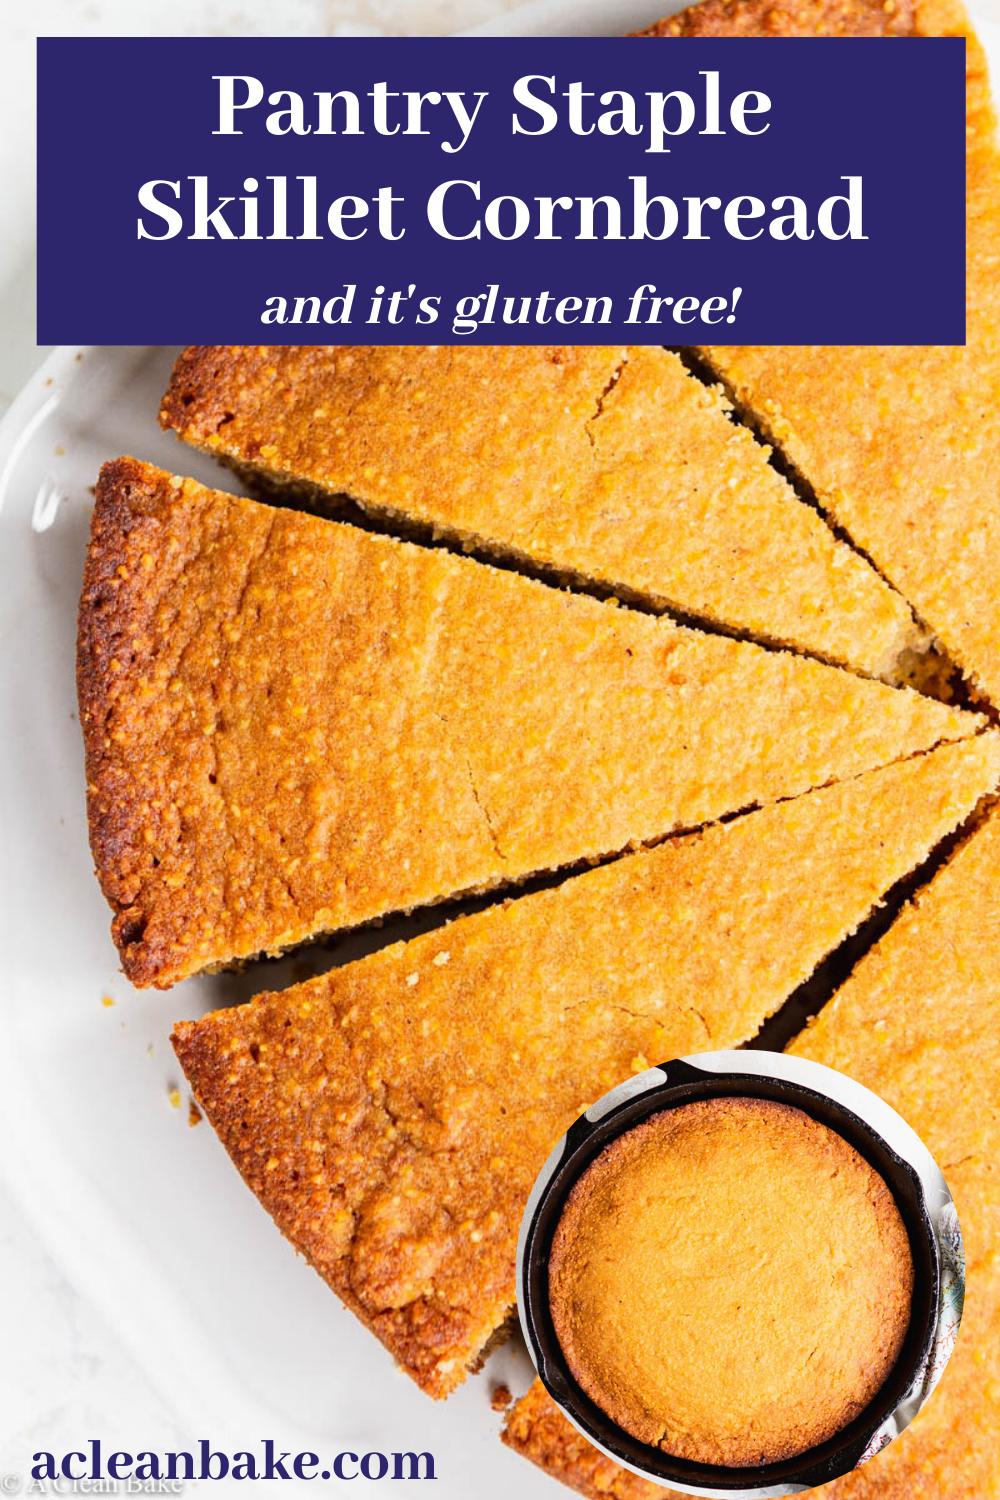 Gluten Free Skillet Cornbread Recipe In 2020 Breakfast Bread Recipes Easy Thanksgiving Recipes Easy Holiday Recipes